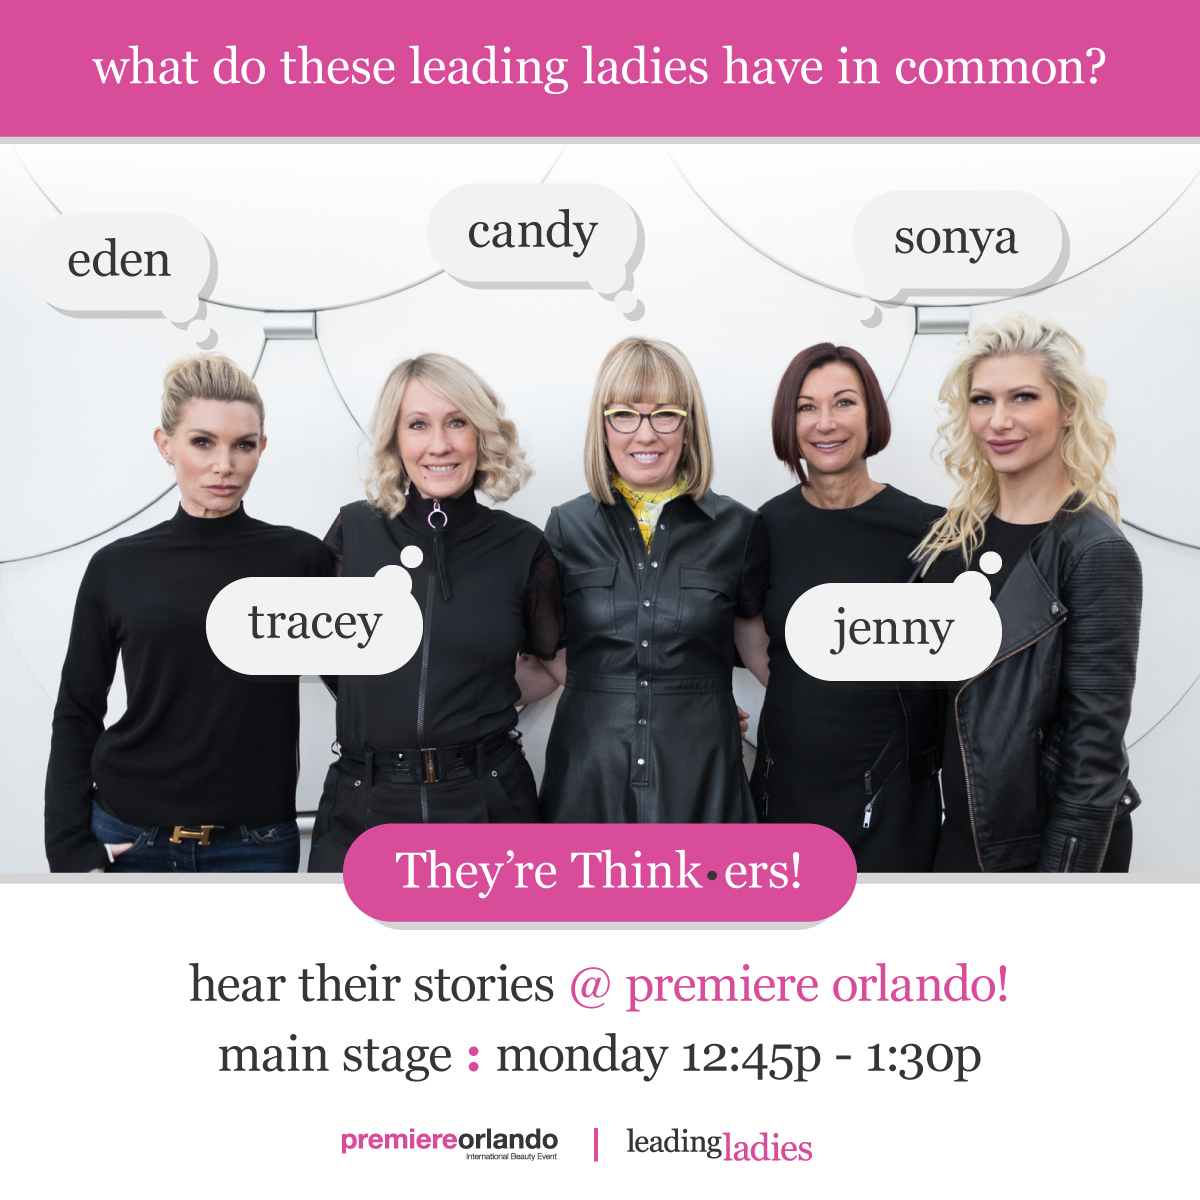 In Leading Ladies, Eden Sassoon, Tracey Hughes, Candy Shaw, Sonya Dove and Jenny Strebe will take the stage at Premiere Orlando to discuss the issues facing women today in the professional beauty industry.